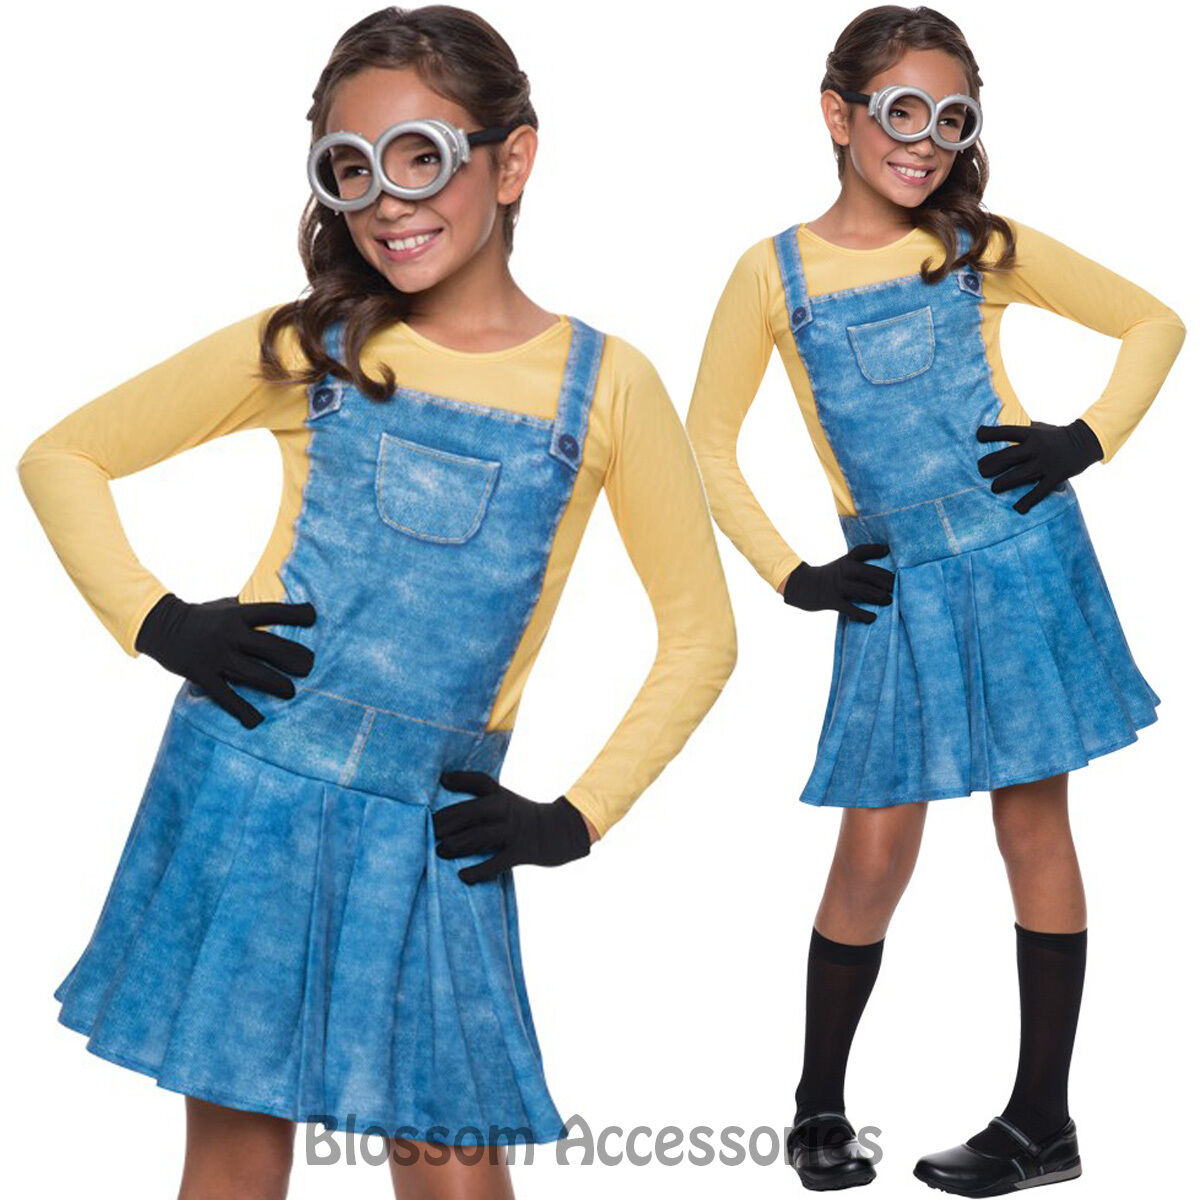 Despicable Me 2 - Female Minion Girls Child Fancy Dress Up Costume Outfit